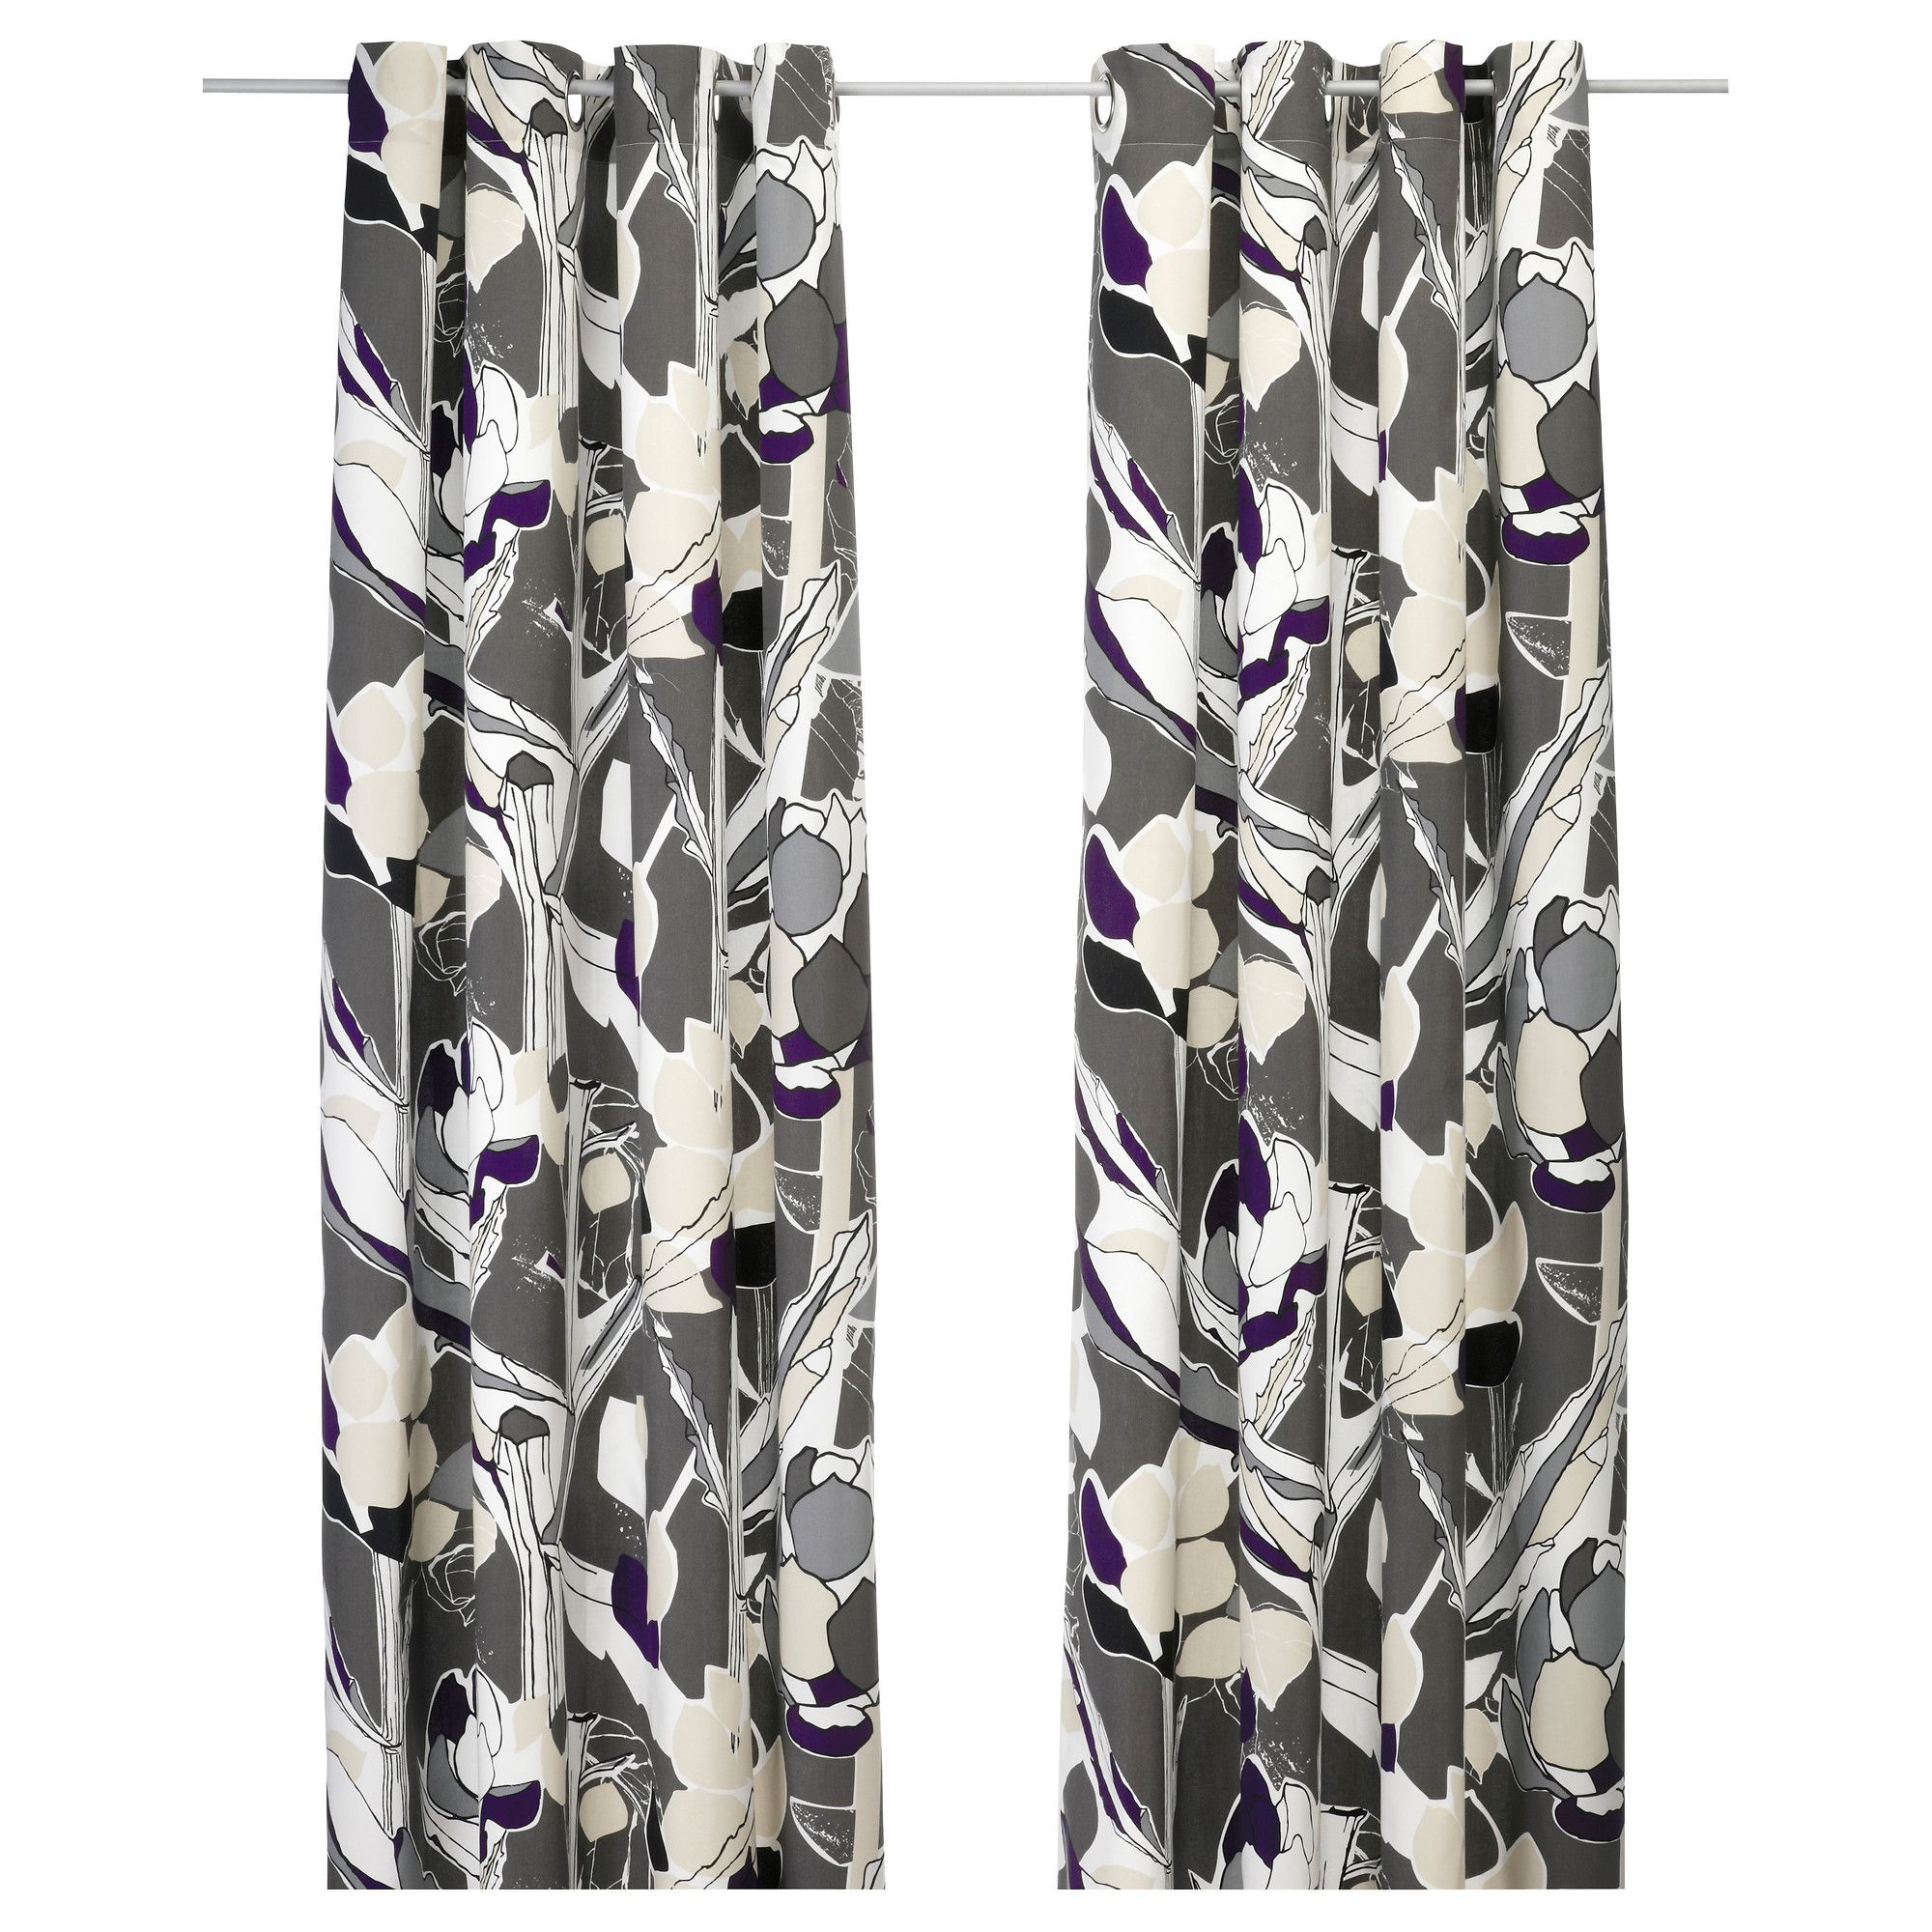 Ikea Us Furniture And Home Furnishings Curtains Colorful